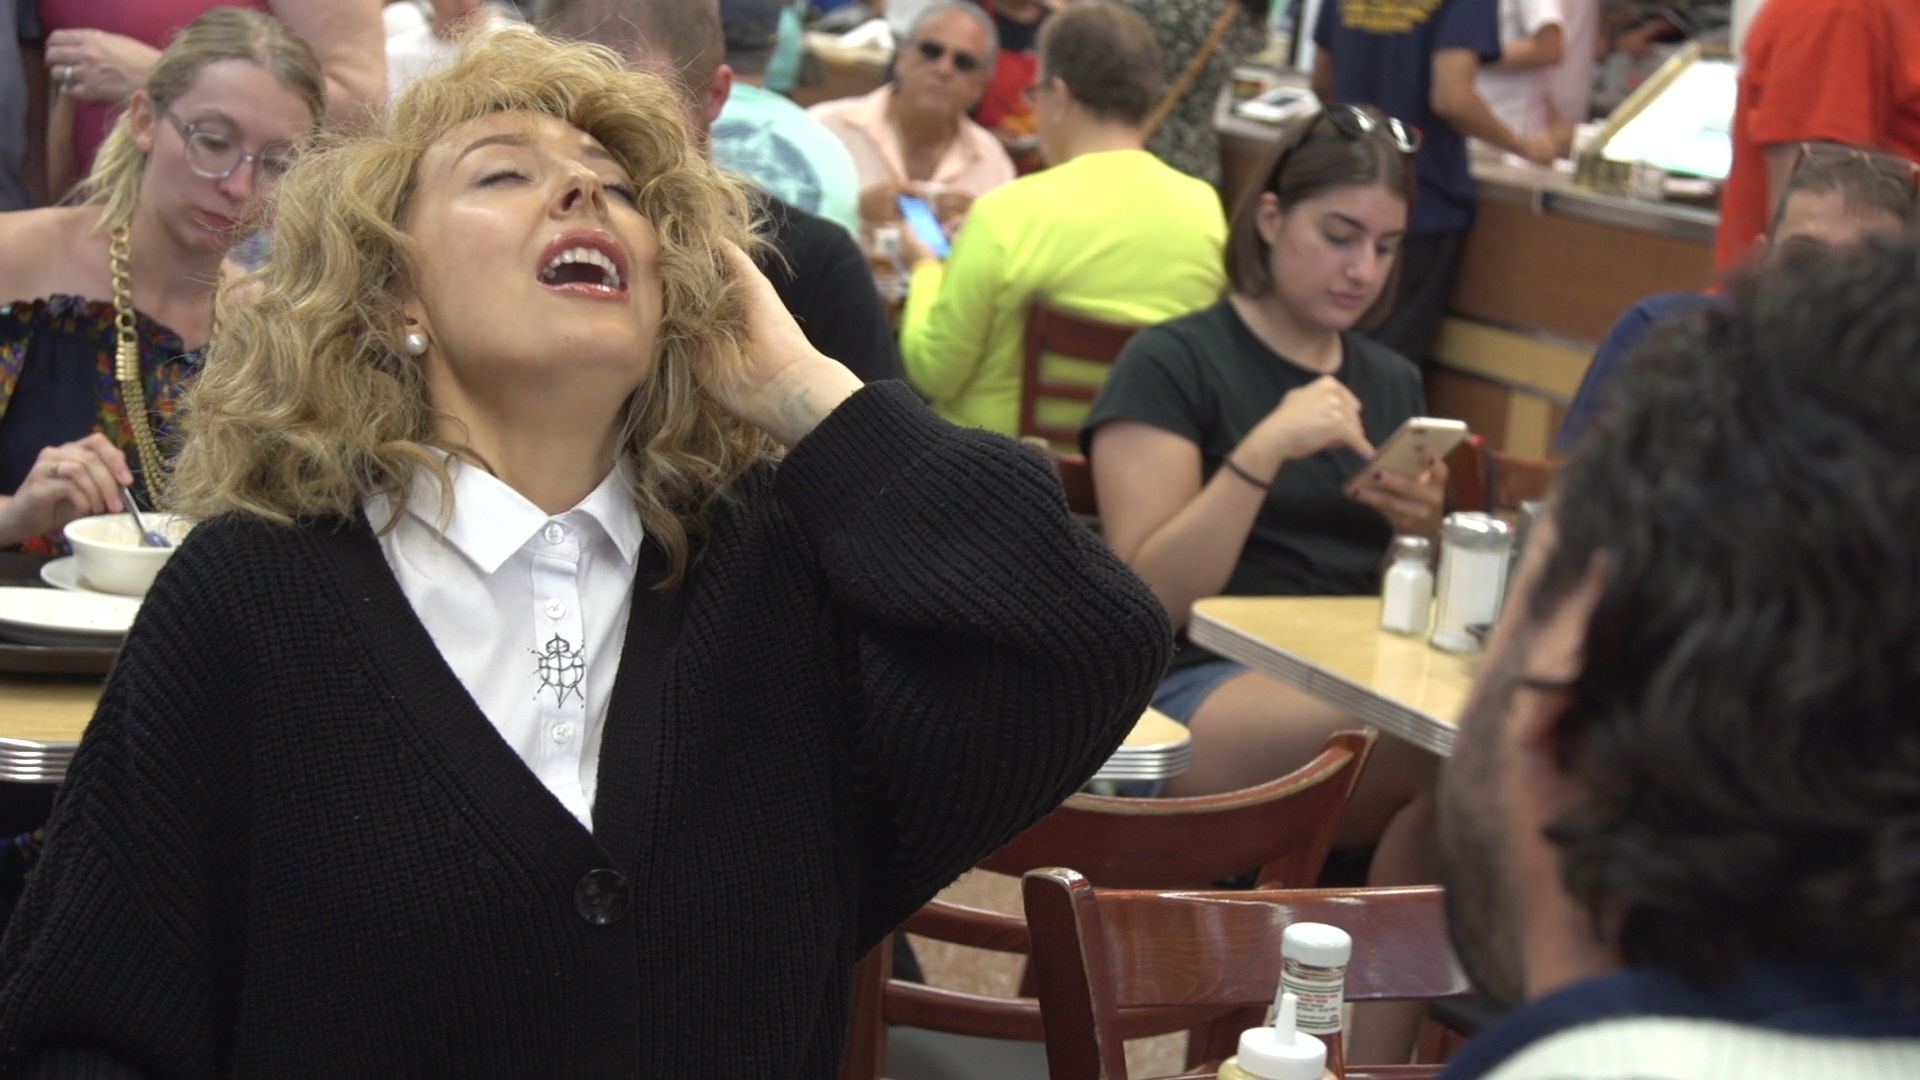 Katz's Deli Held A Fake Orgasm Contest And It Will Seriously Make You Blush